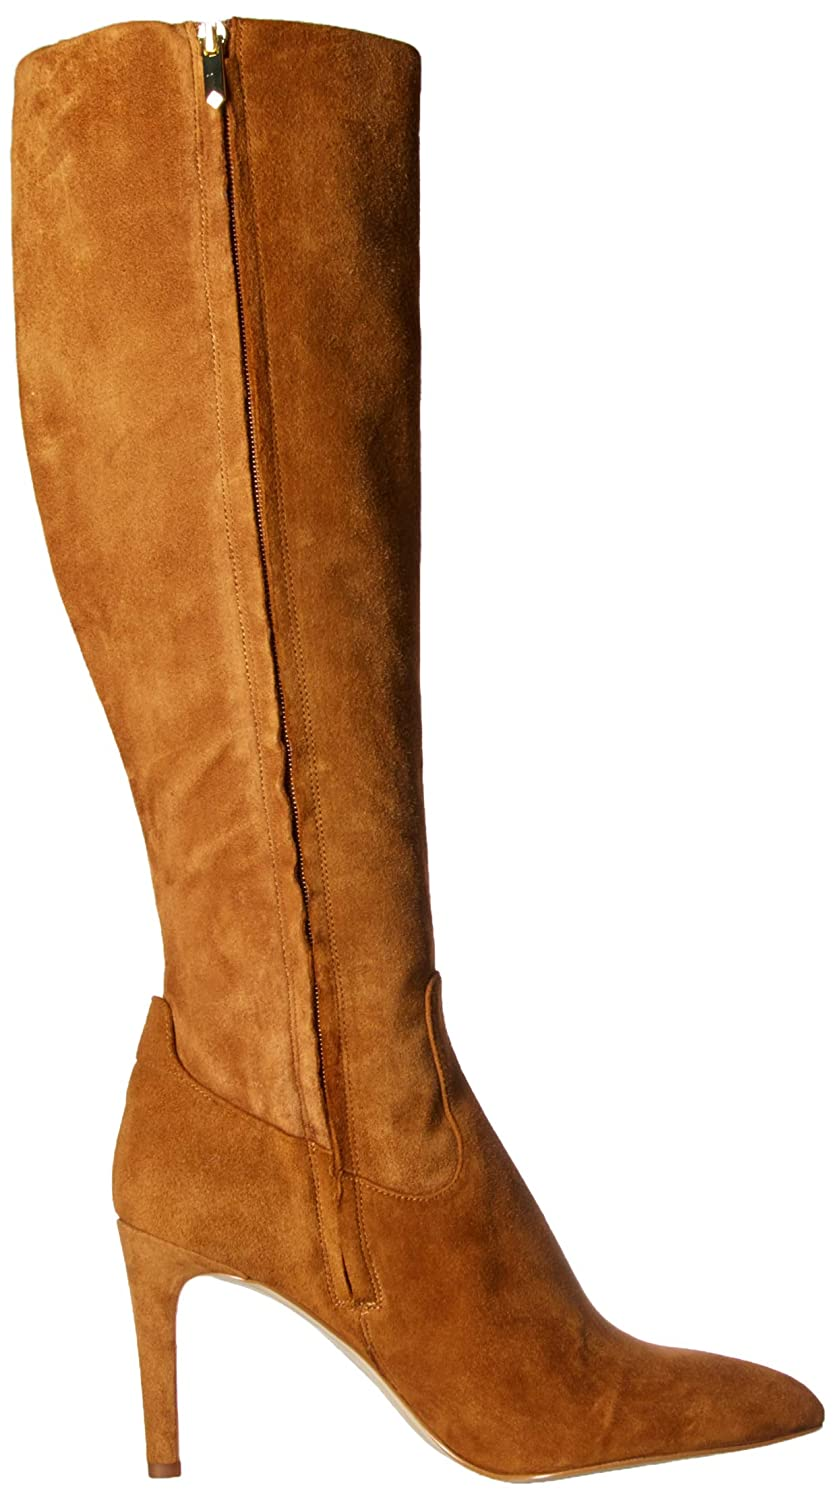 5e5b9da4423 Sam Edelman Women s Olencia Mid Calf Boots  Amazon.ca  Shoes   Handbags